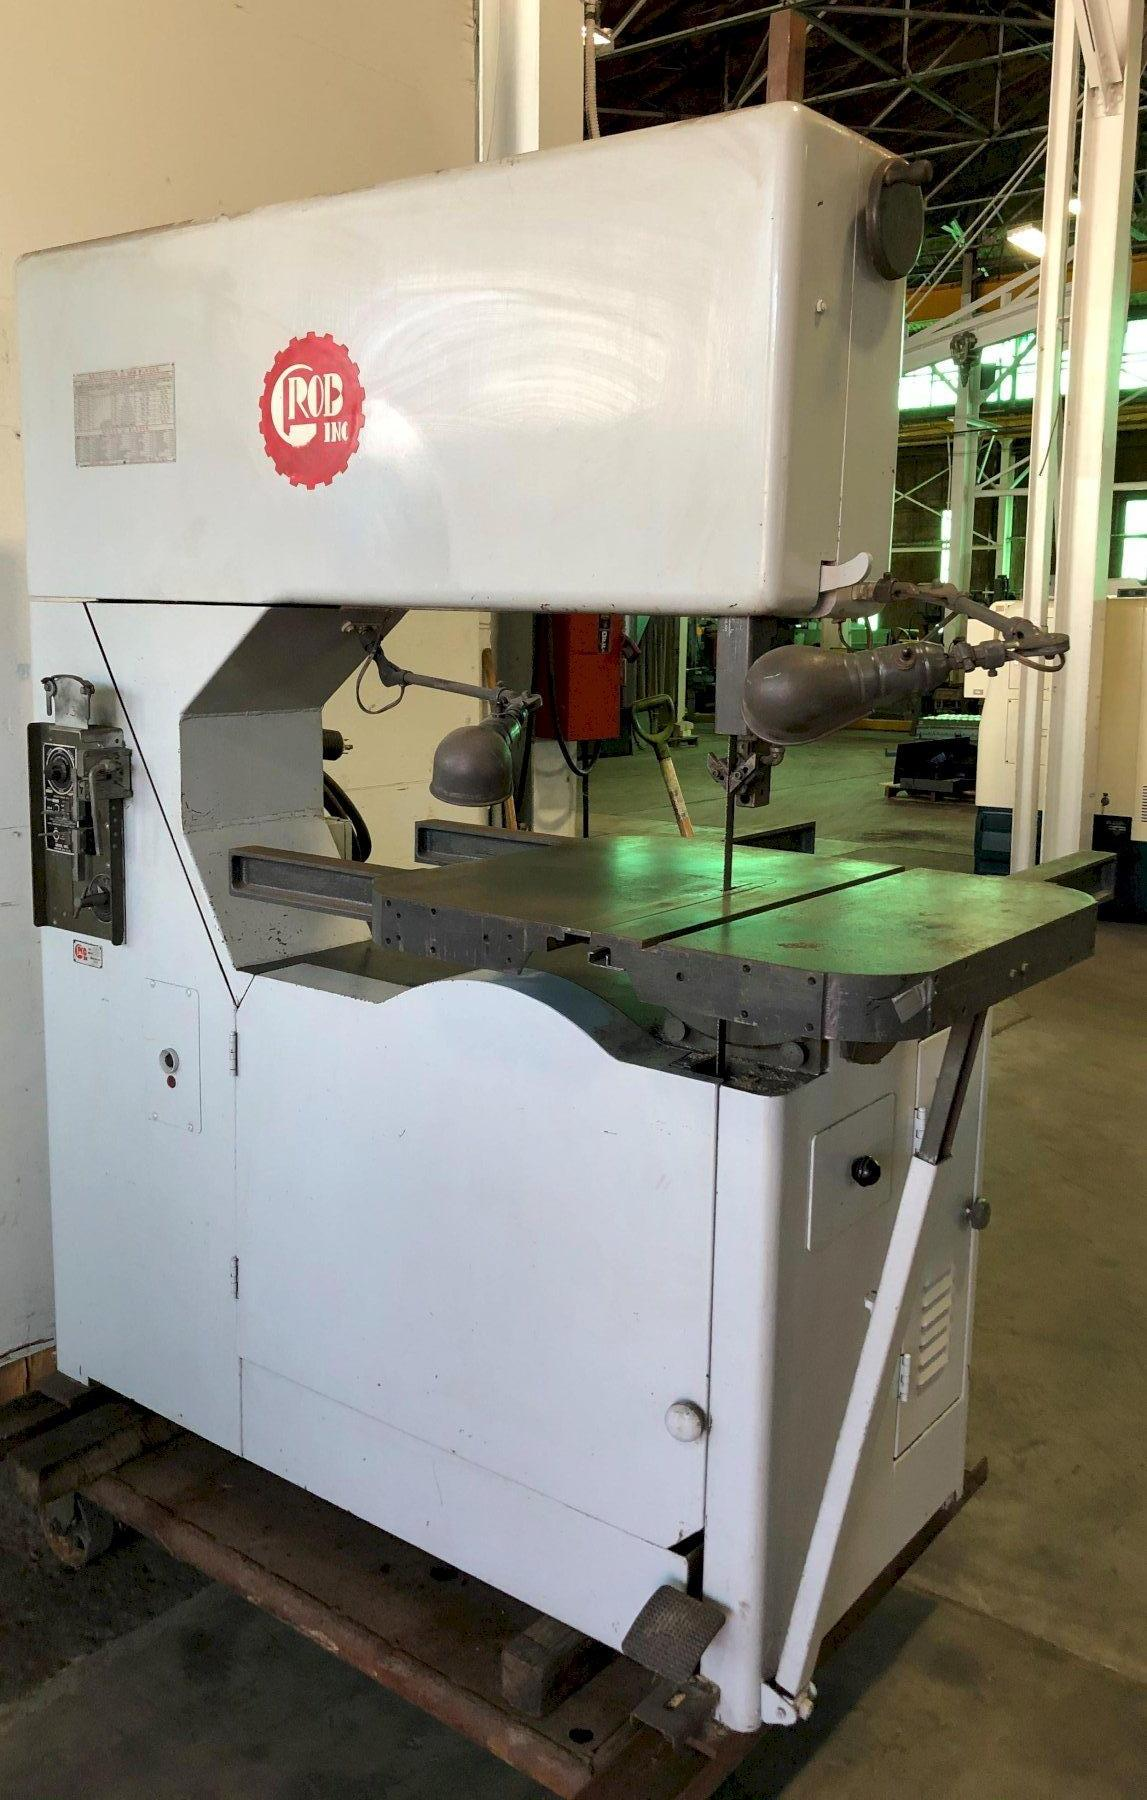 36″ Grob Vertical Band Saw No. NS-36, 12″ Height, 50-2030FPM, Clean, Low Price